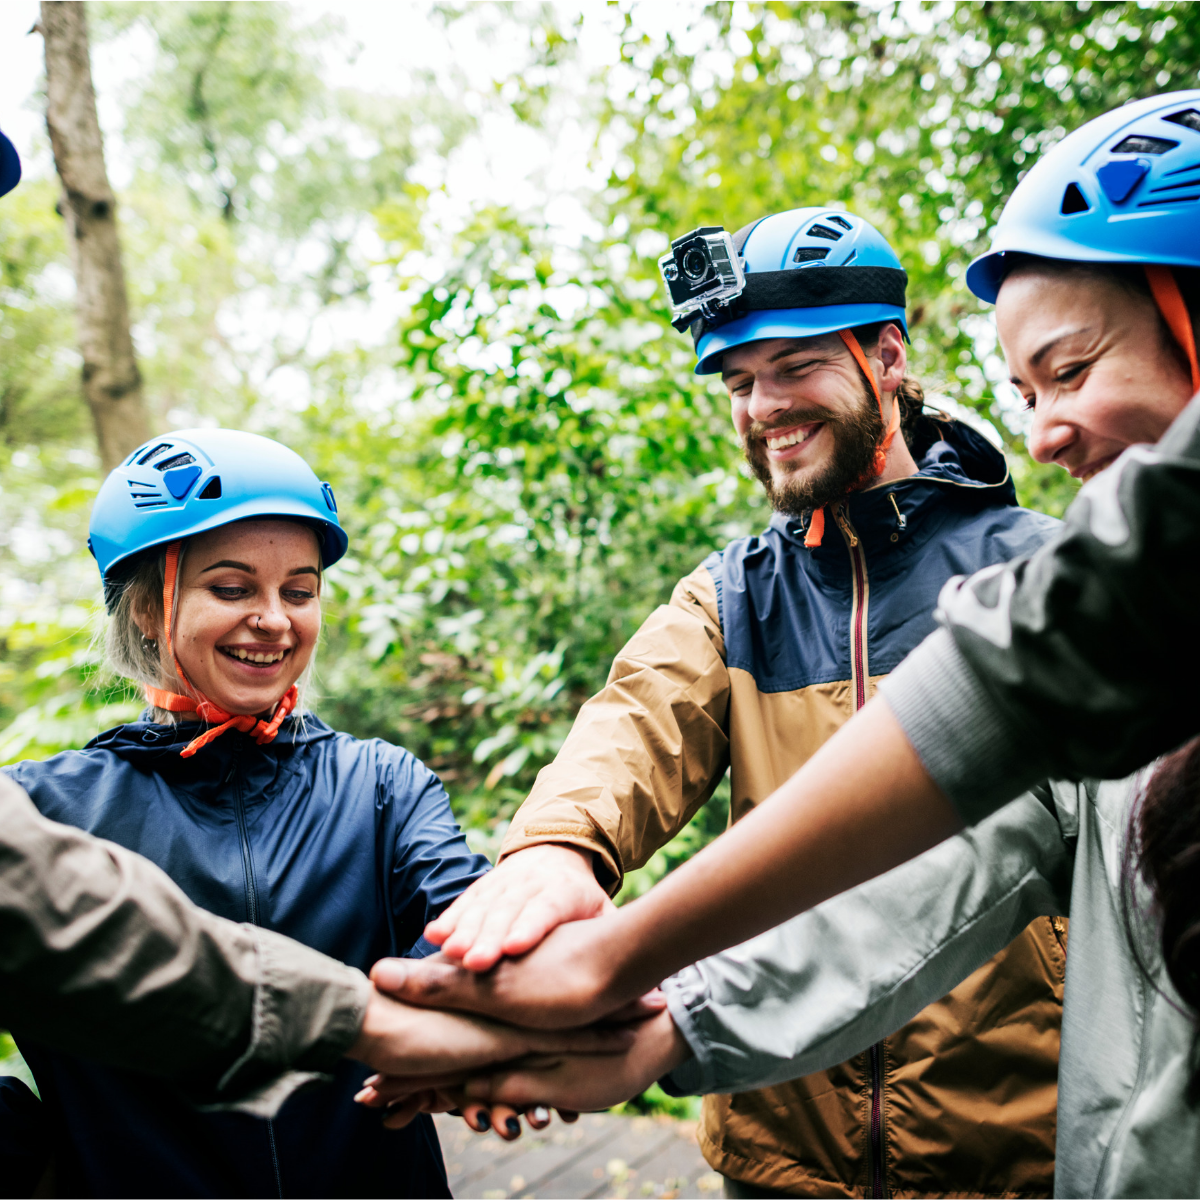 Group of people outdoors happy wearing helmets on expedition, putting hands into a circle